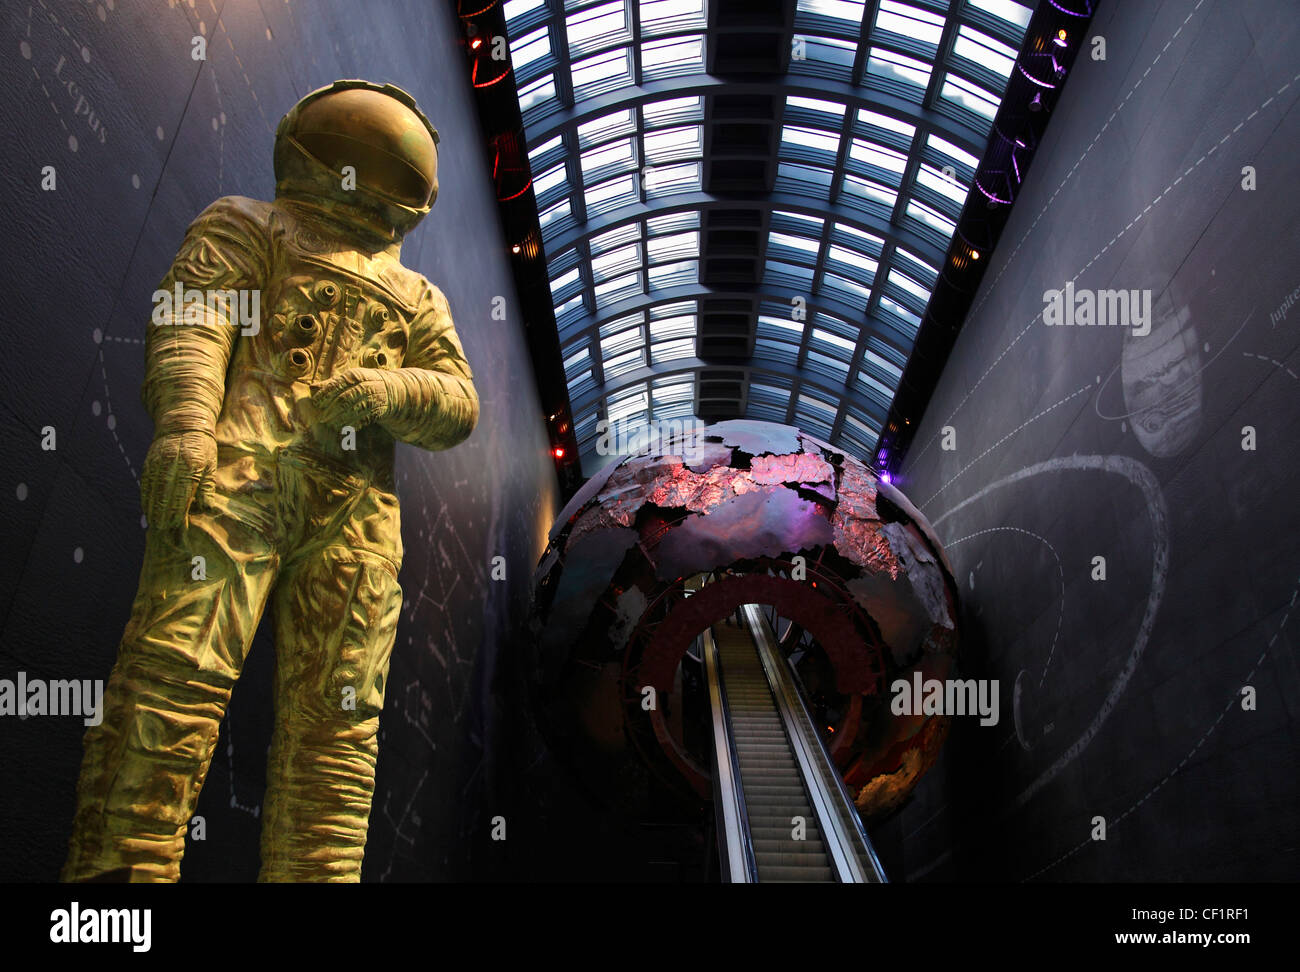 Entrance to the Science Museum in Kensington, London 2 Stock Photo